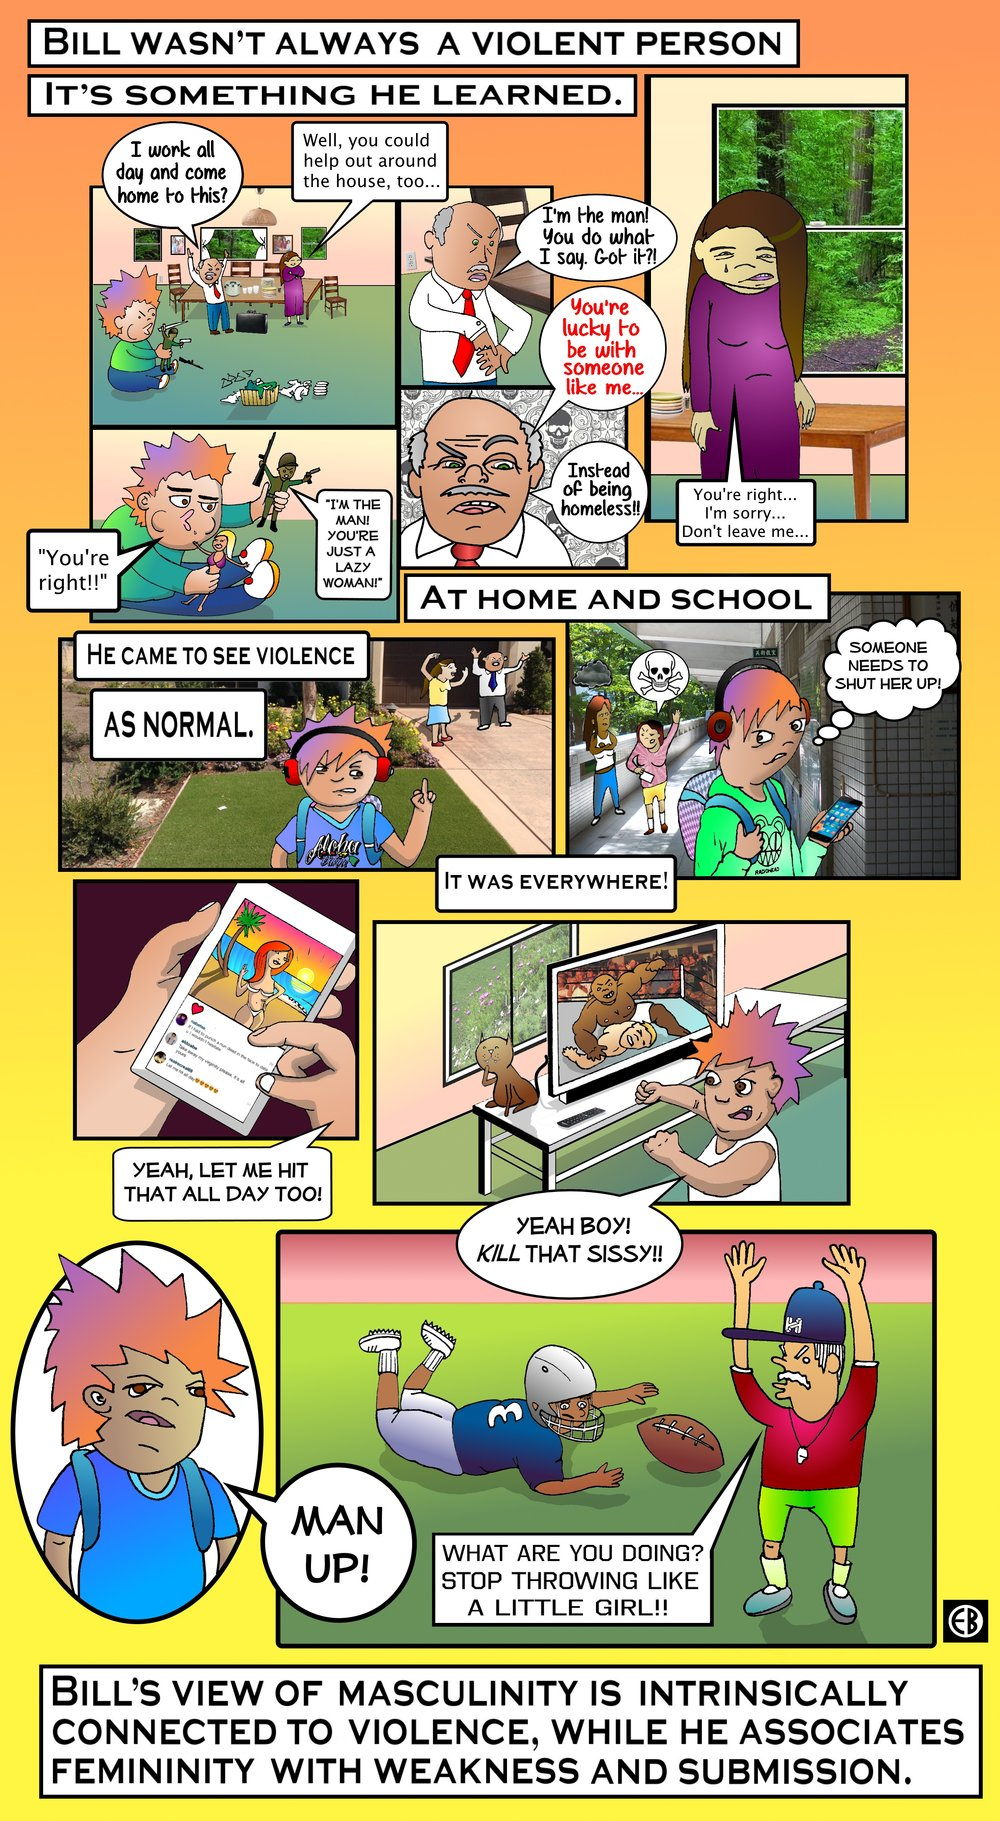 In this comic, we get a glimpse at the detrimental effects that violence can have on a person. We begin to understand how Bill's personality and controlling behaviors stem from his upbringing. Being exposed to violence and abuse at home, in school, on social media, through sports and entertainment have normalized this behavior to Bill. Is it still possible for Bill and Amber to have a healthy relationship? Only time will tell...